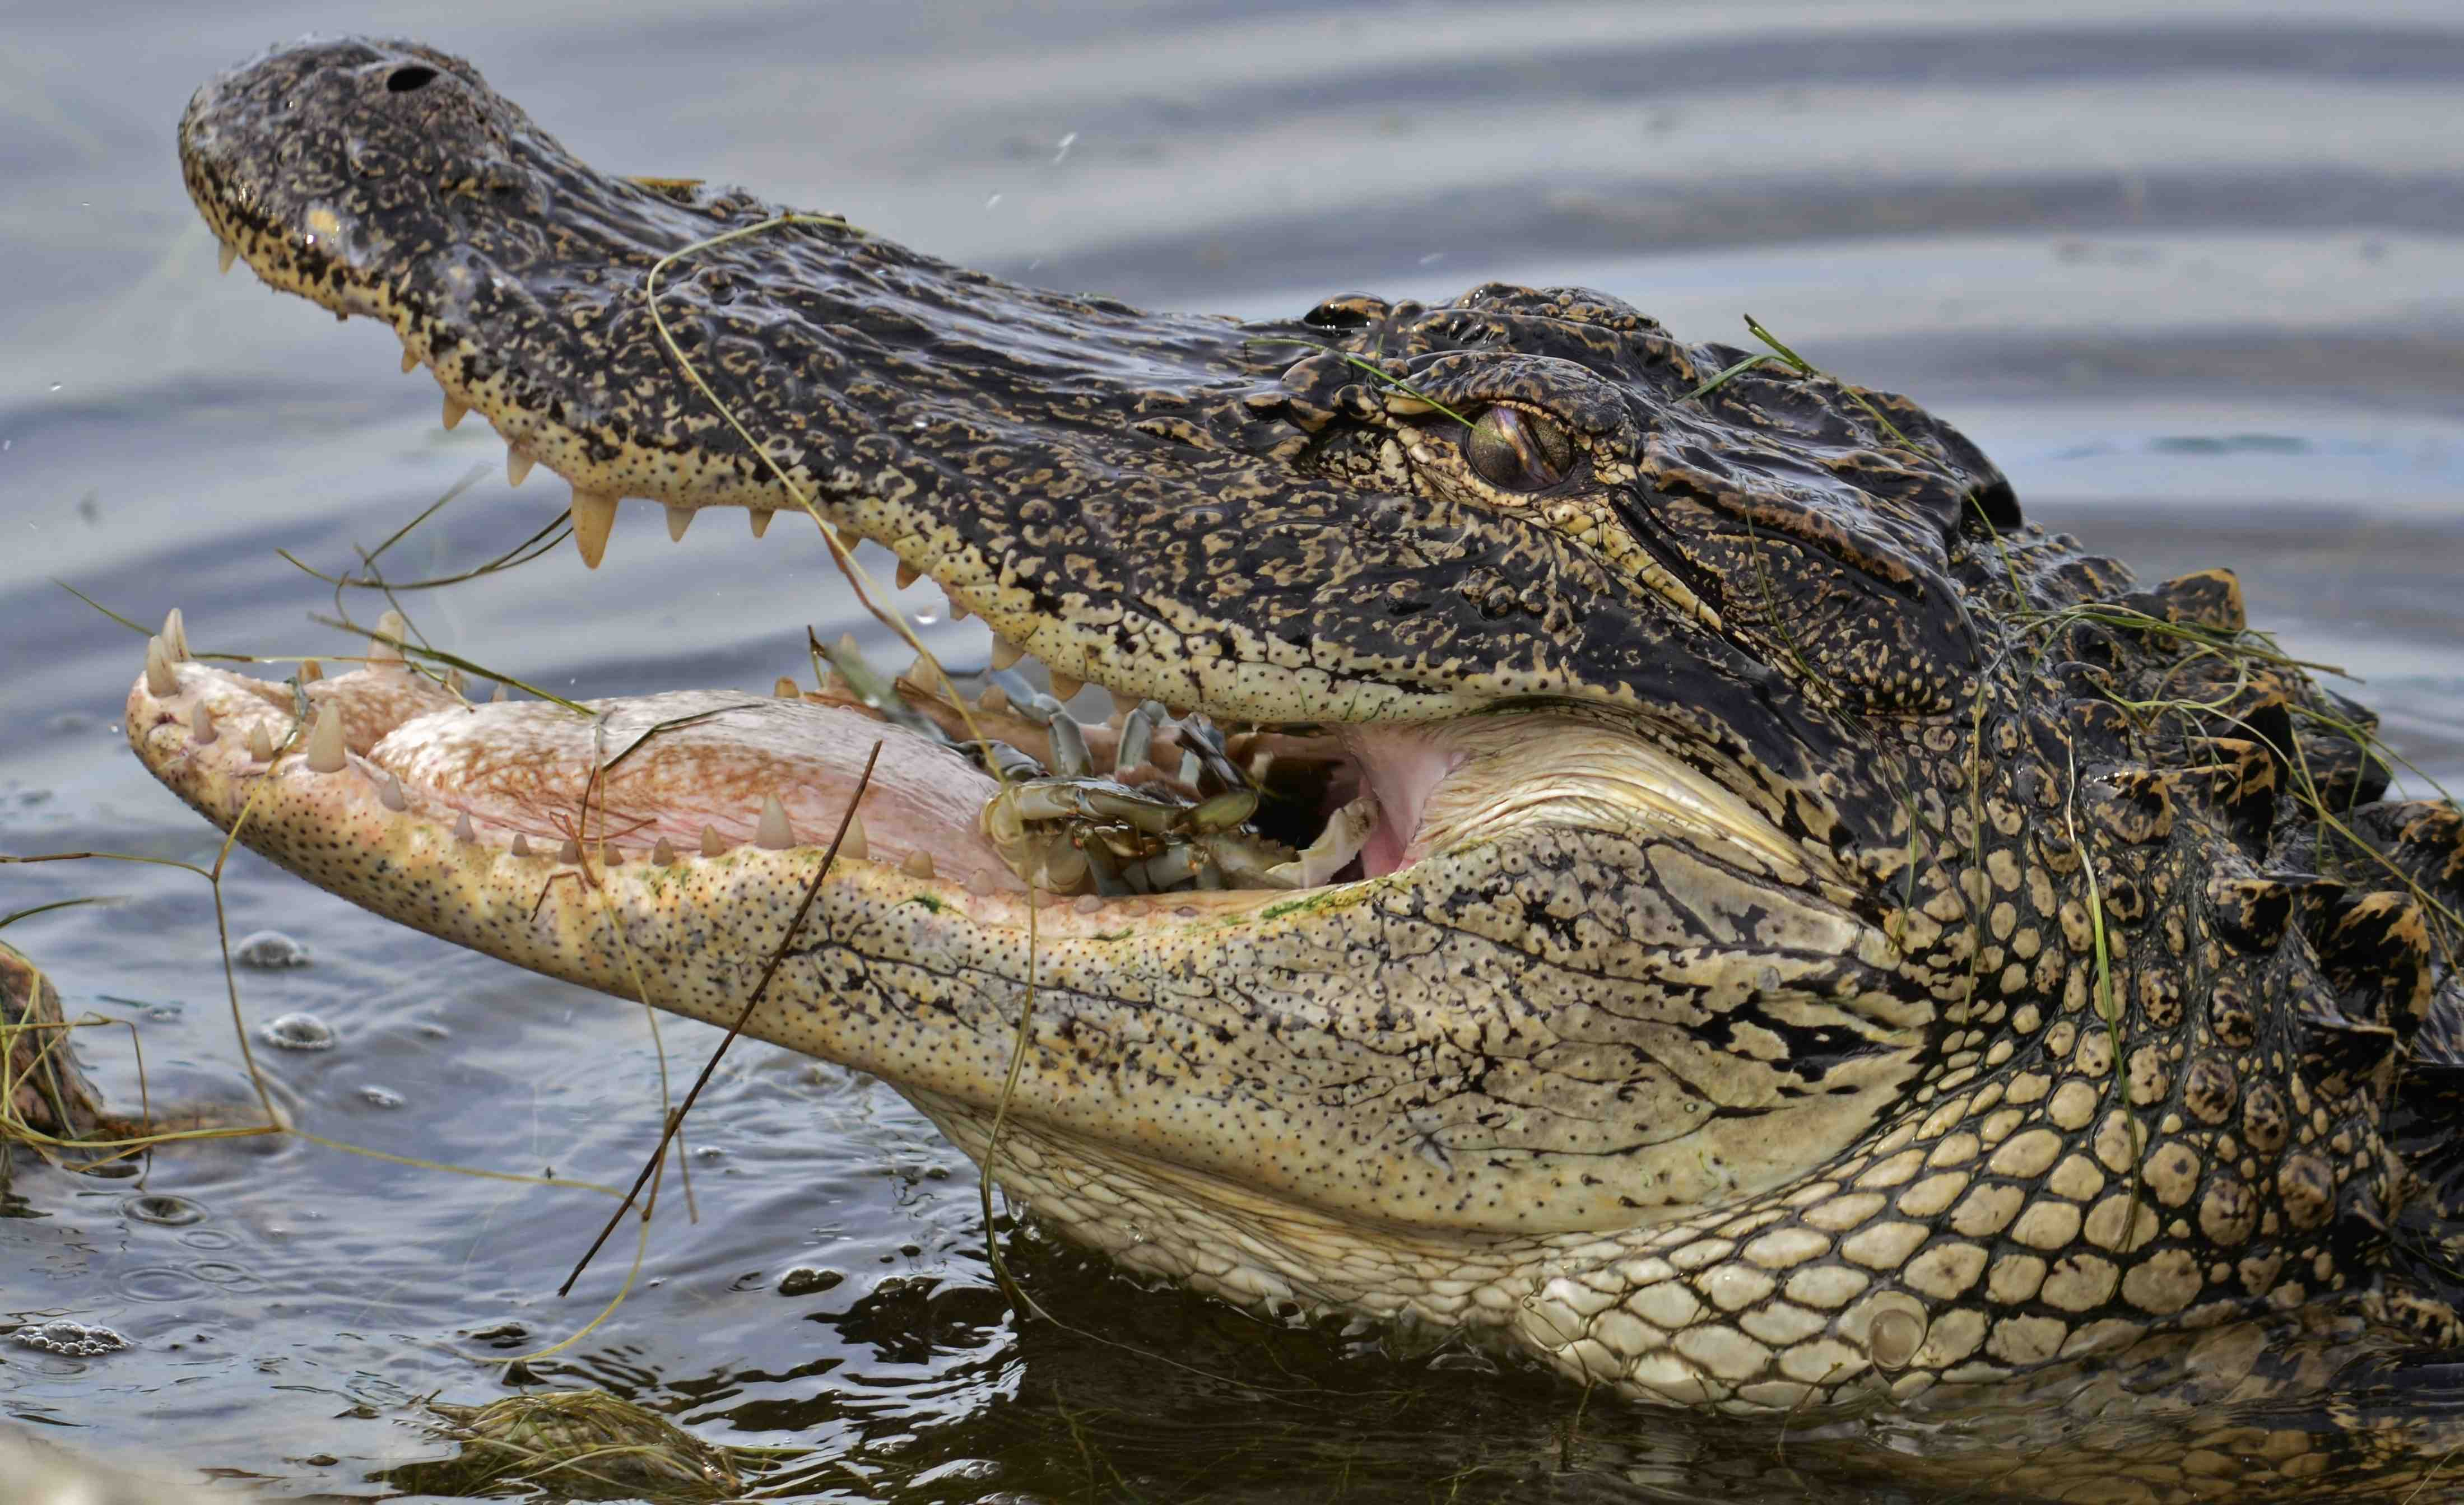 The Answer Revealed Could A Giant Alligator Eat A Whole